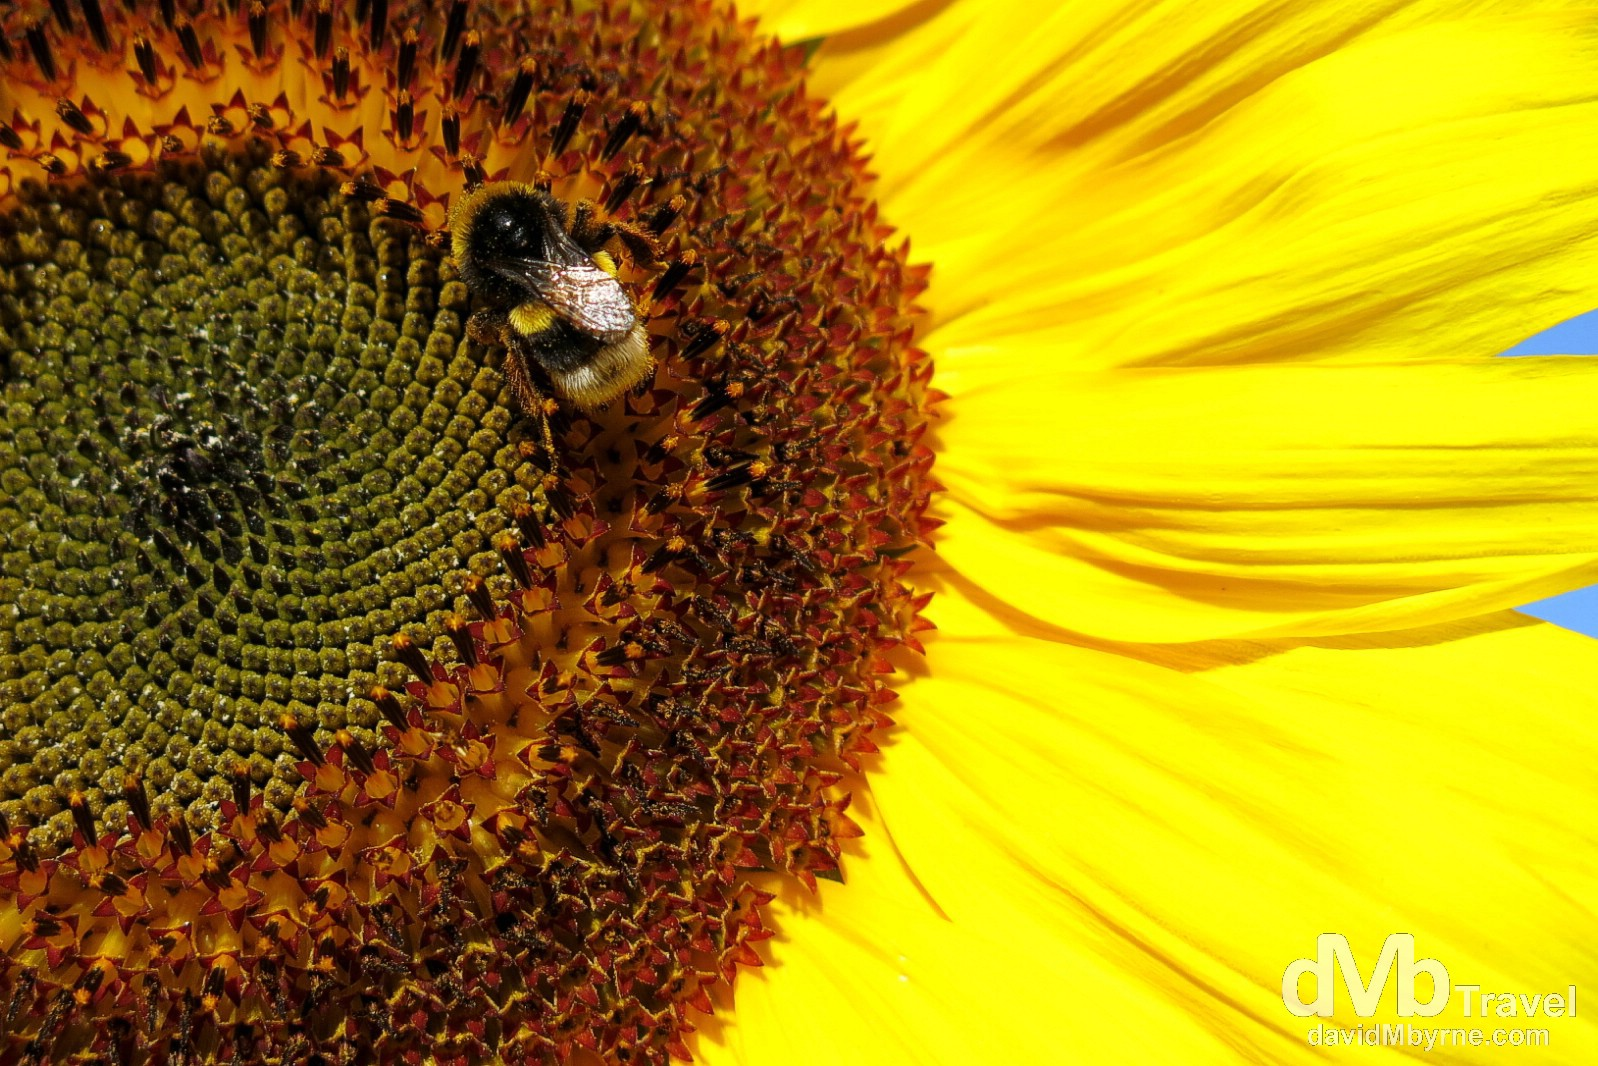 A bee resting on a sunflower in the estate of Quinta de Sant'Ana in the hills above Gradil, Mafra, Portugal. August 23rd 2013.